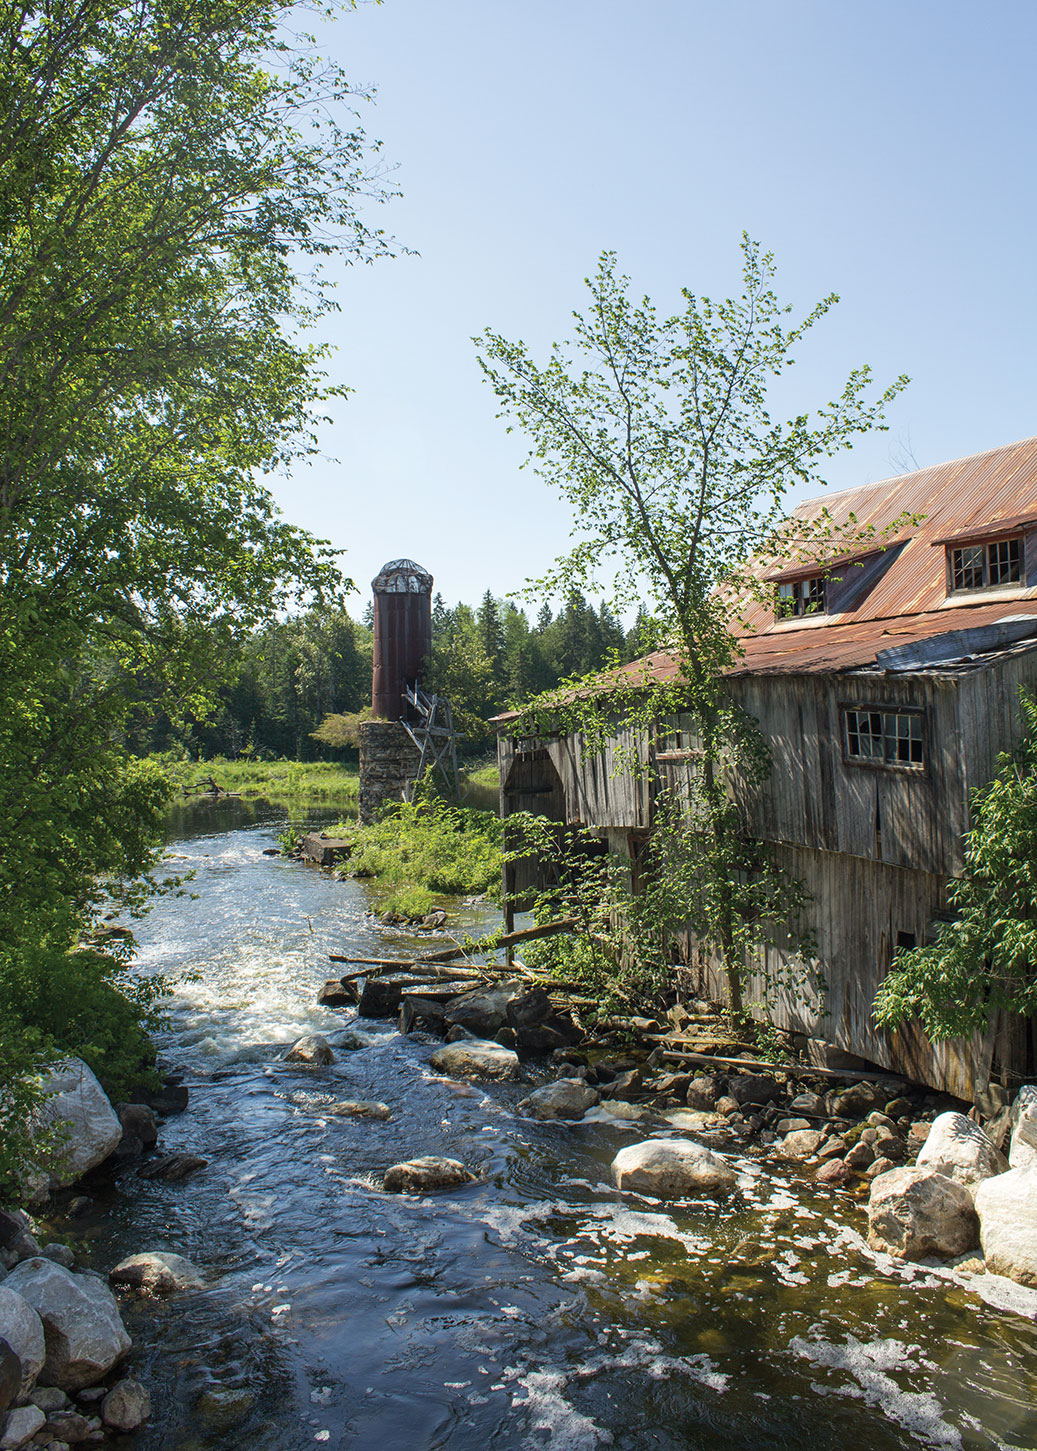 Balaclava Saw Mill